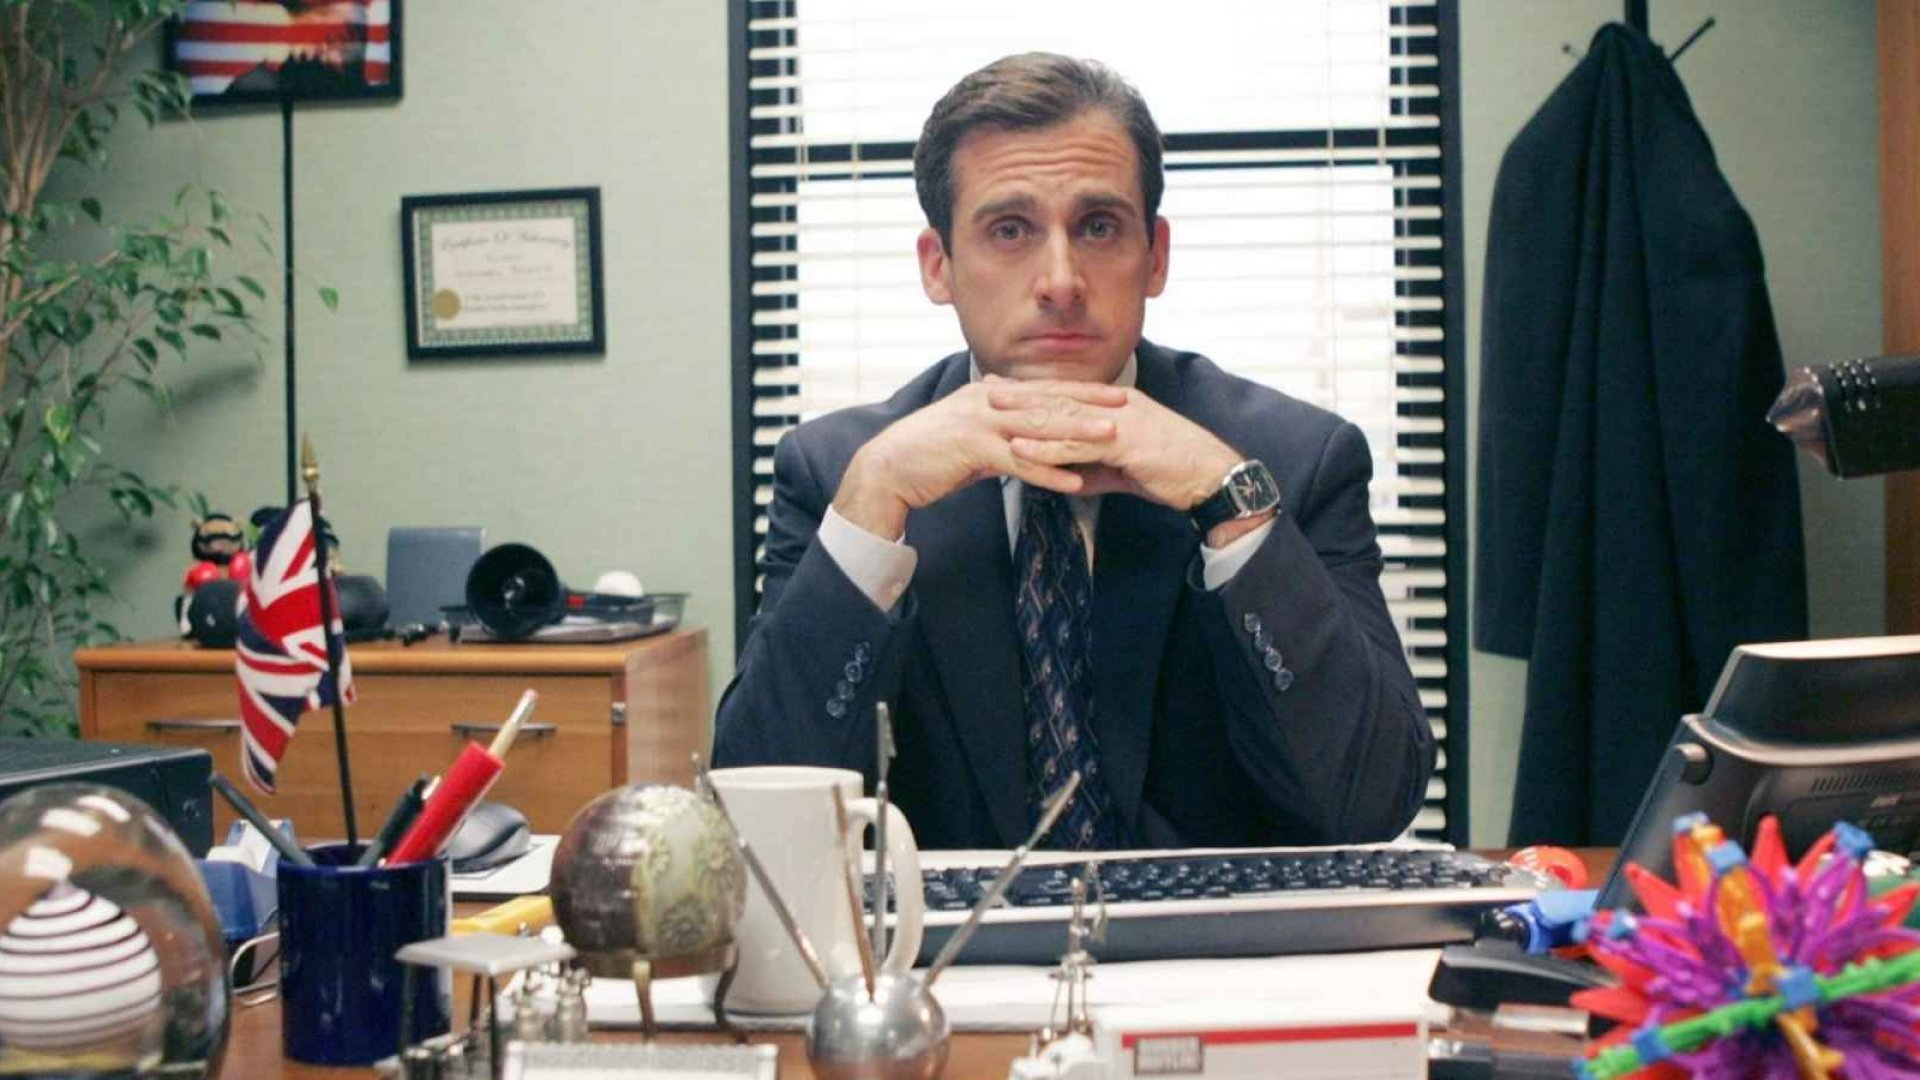 Steve Carell as Michael Scott in NBC's <em>The Office:</em> A leader who often makes questionable moves despite meaning well.